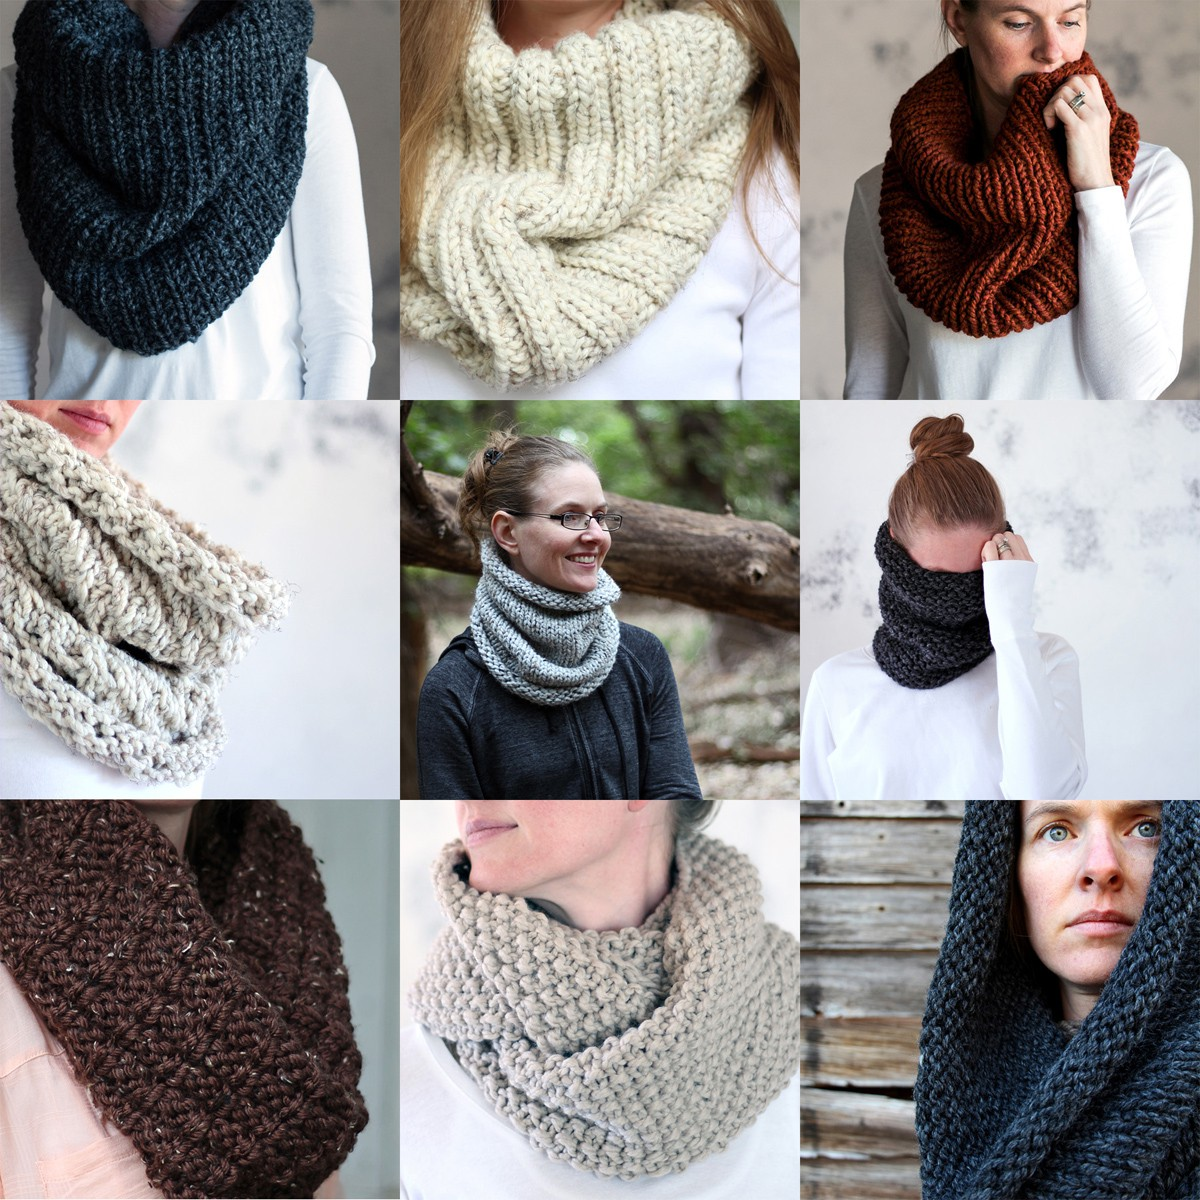 Top 10 Cowl Knitting Patterns by Brome Fields - Brome Fields